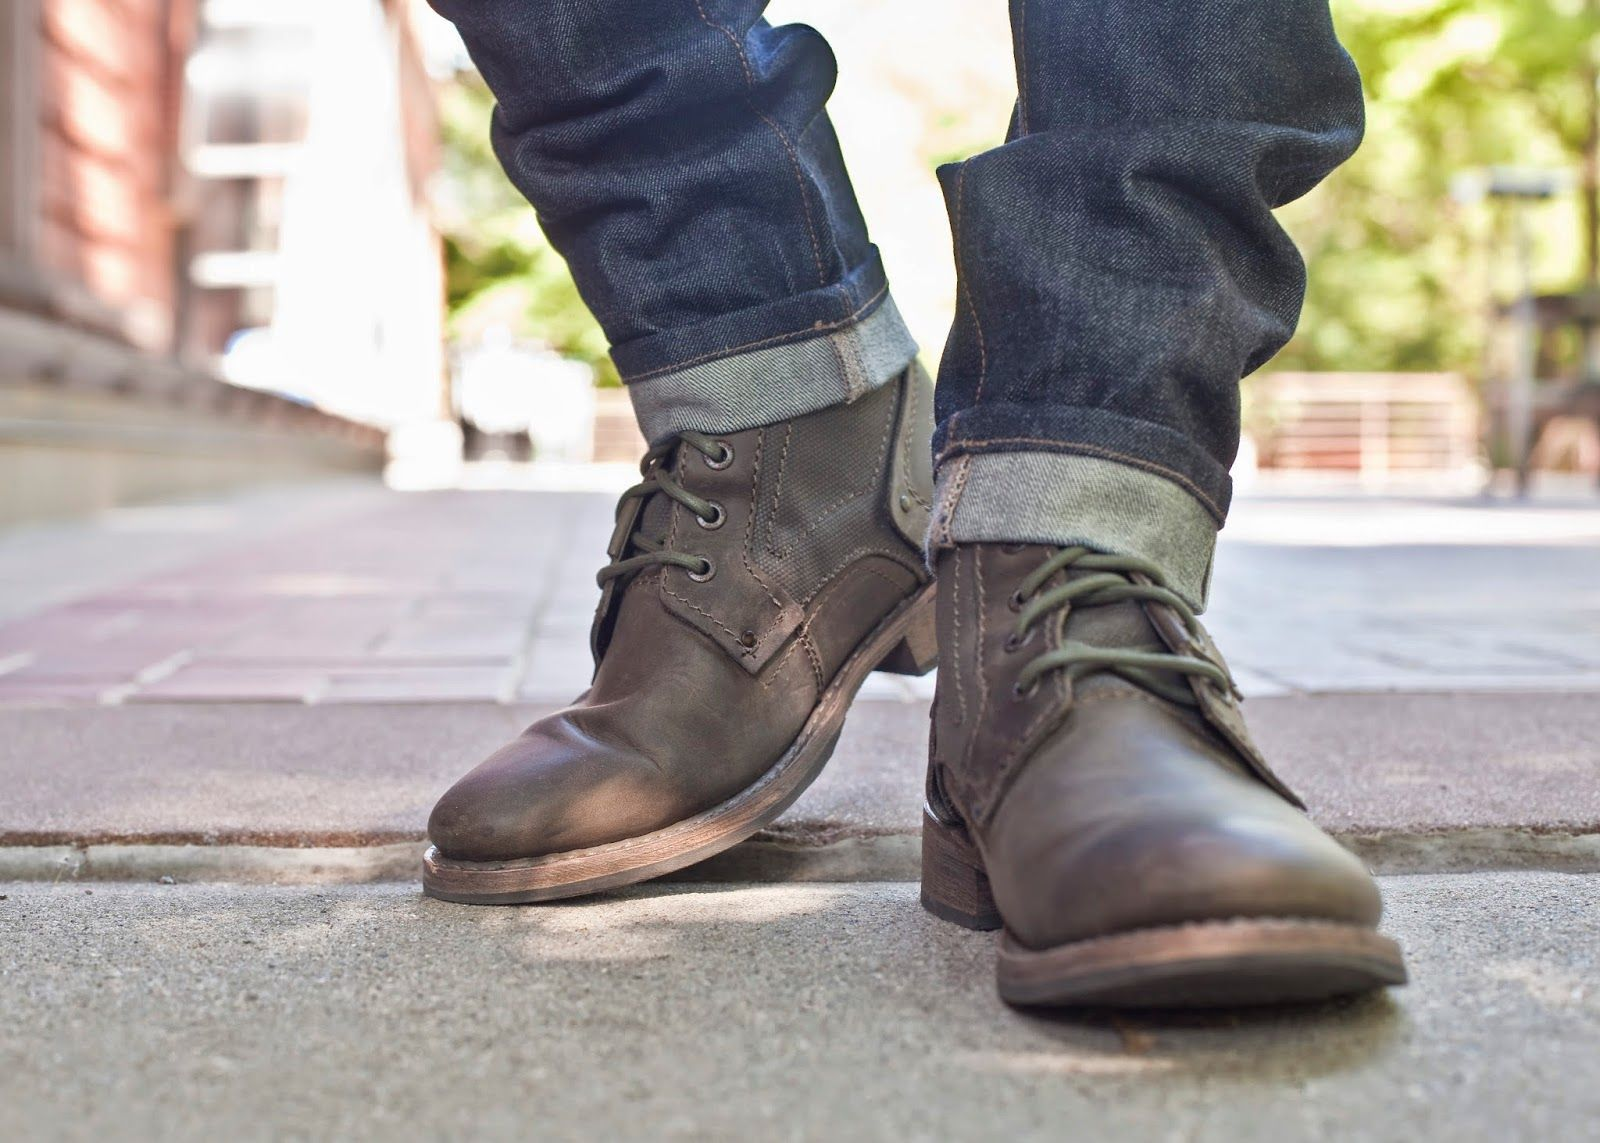 Boots outfit men